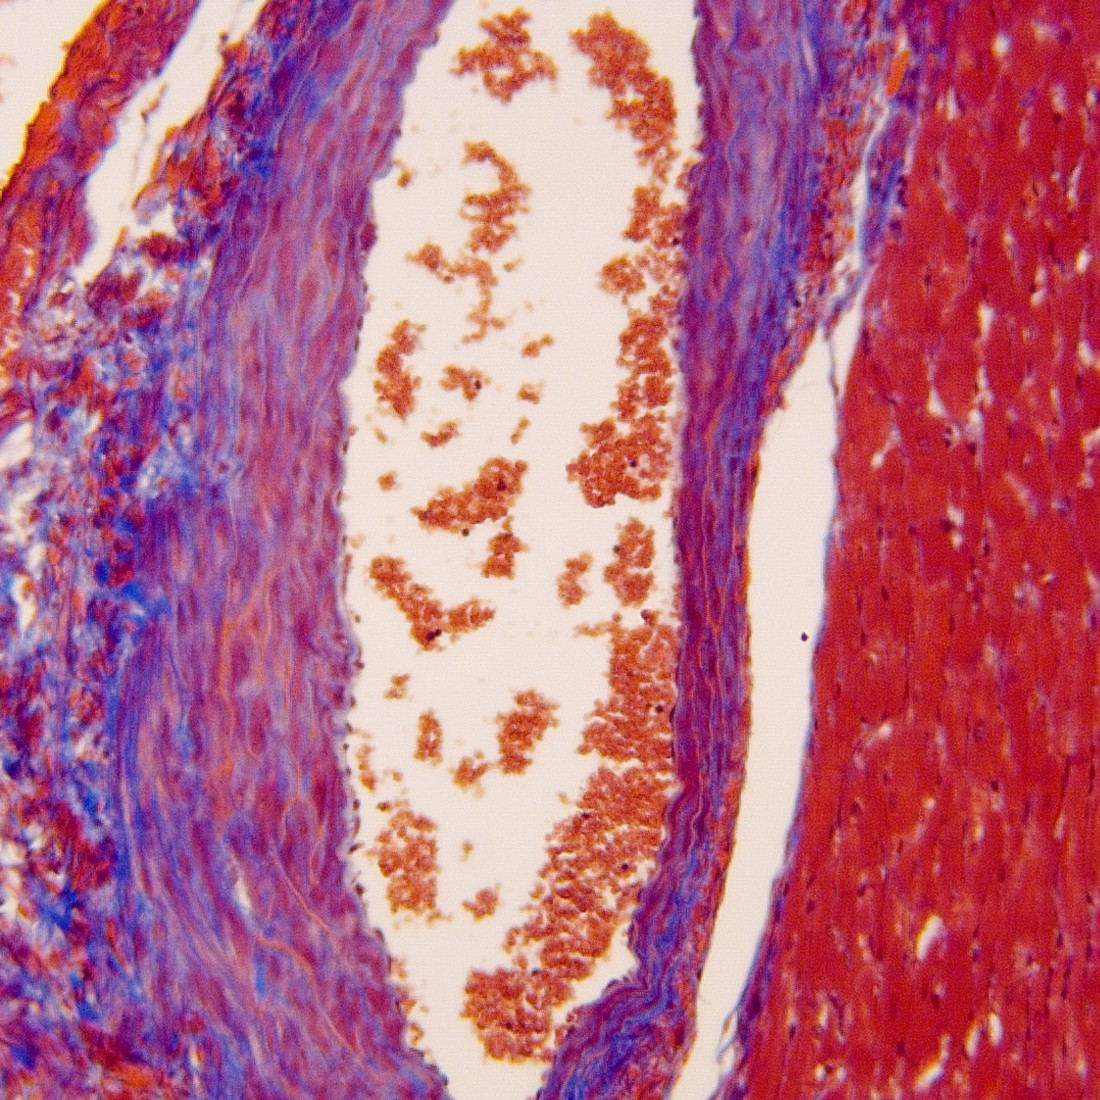 Masson's Trichrome Stain Kit